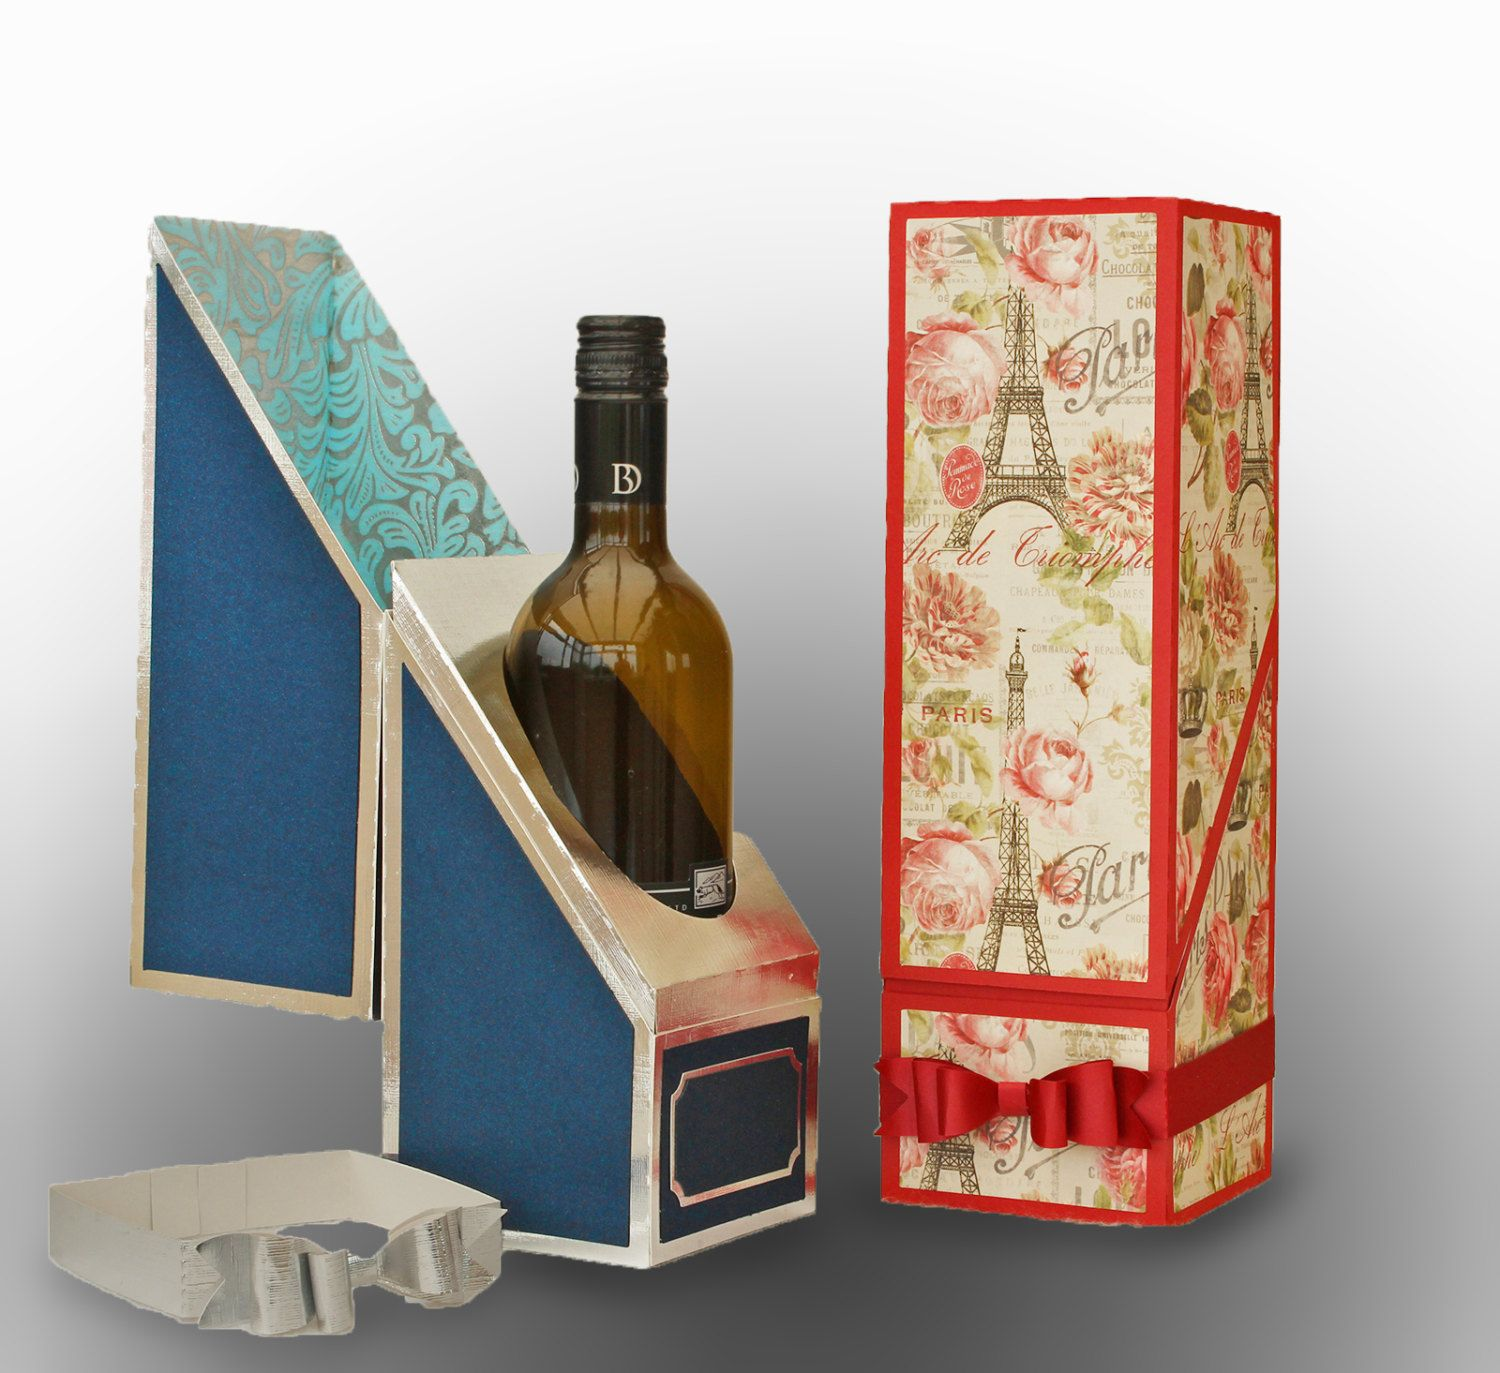 SVG Wine Bottle Gift Box DIGITAL download | Wine bottle gift, Bottle ...